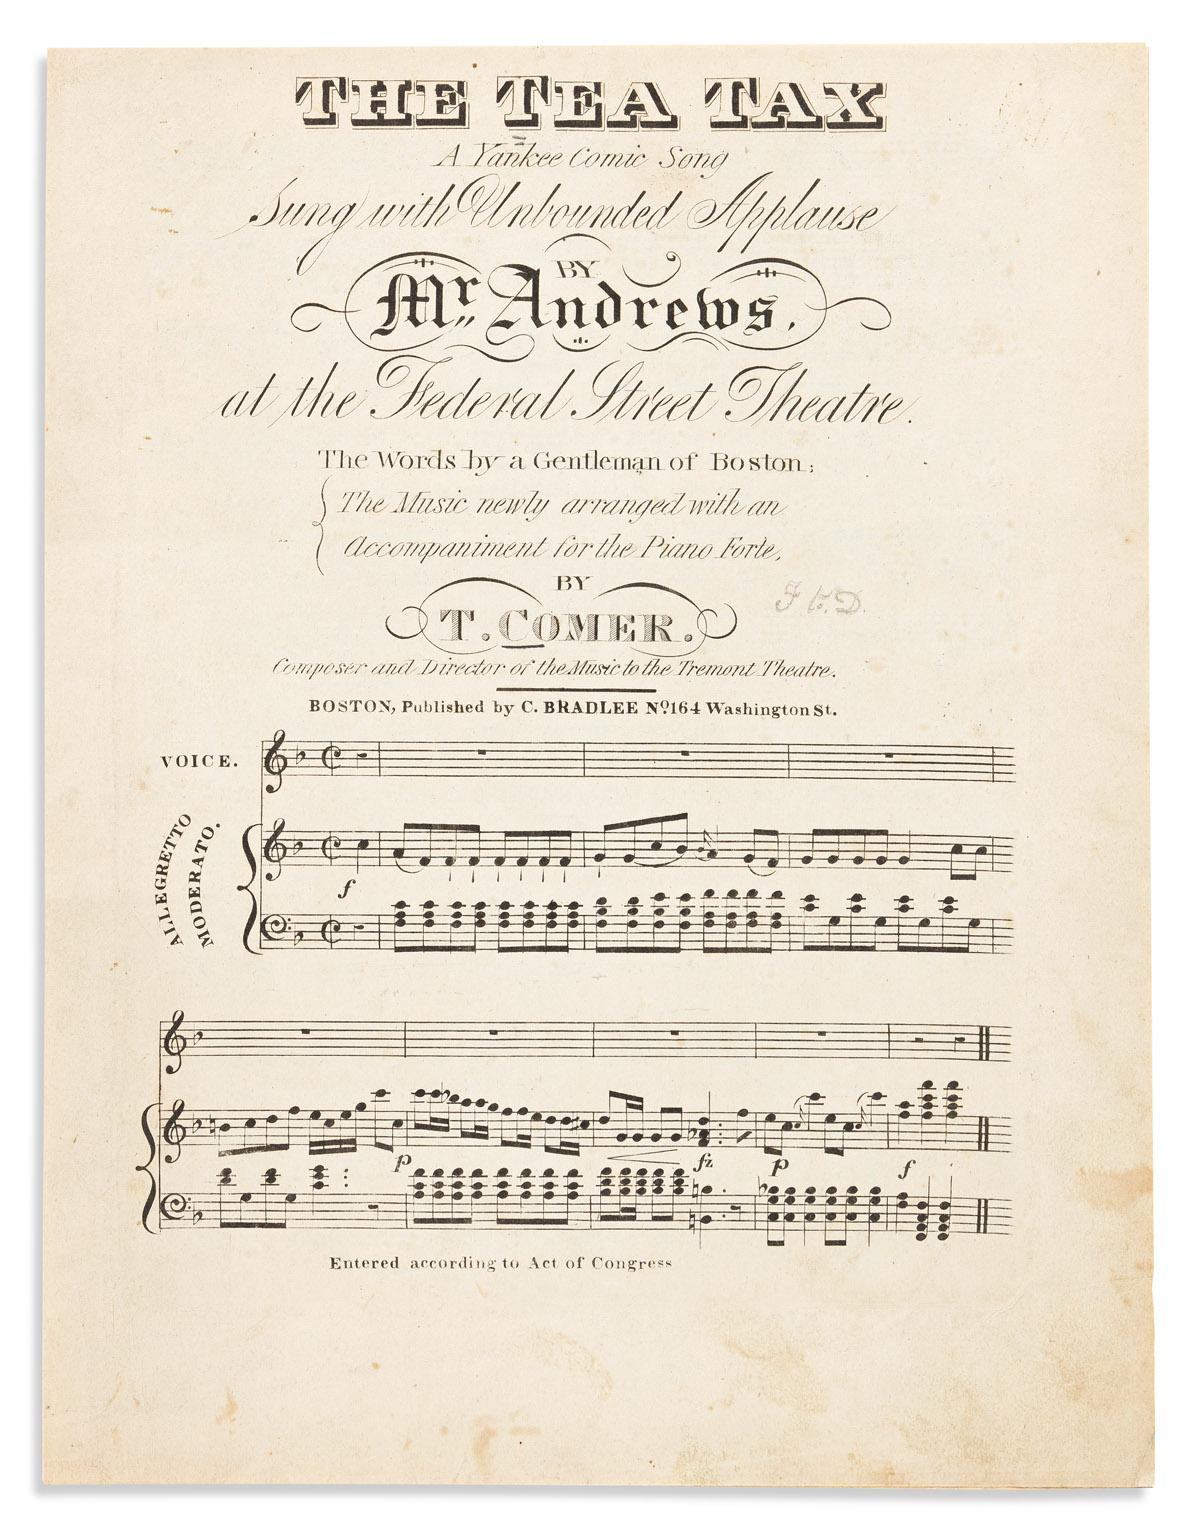 (AMERICAN REVOLUTION--HISTORY.) T. Comer, composer. The Tea Tax: A Yankee Comic Song.